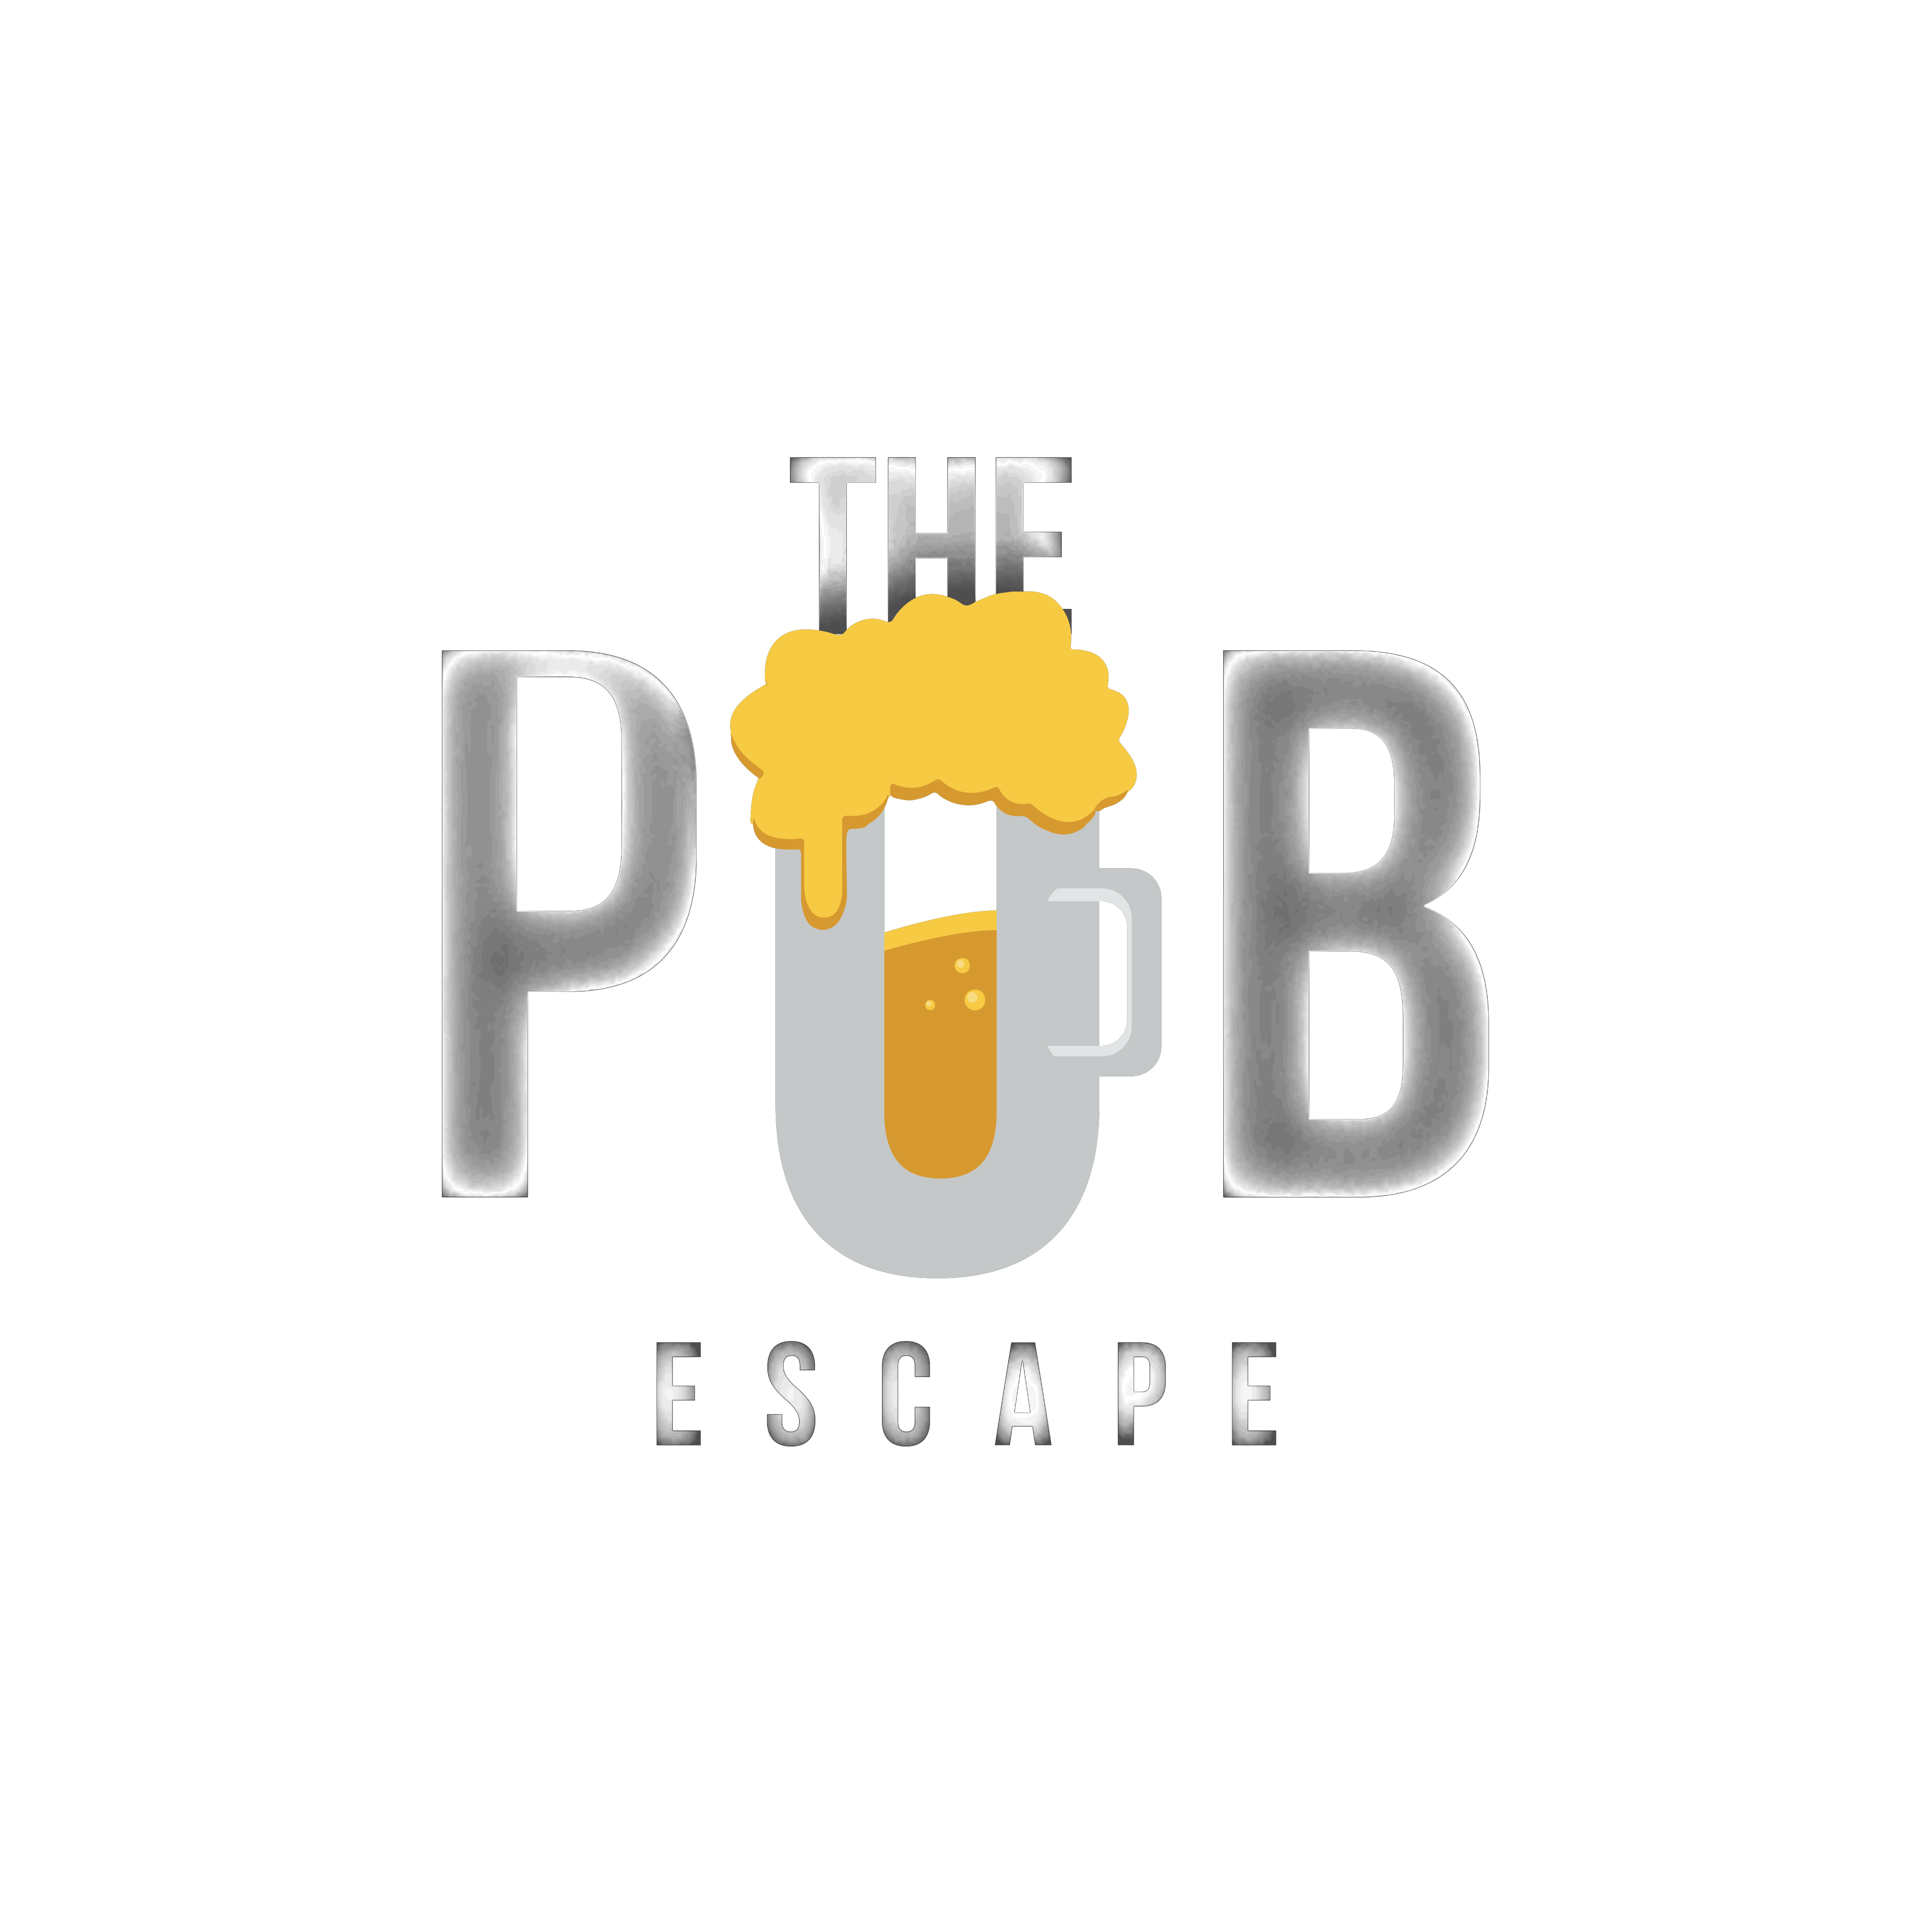 The Pub Escape logo